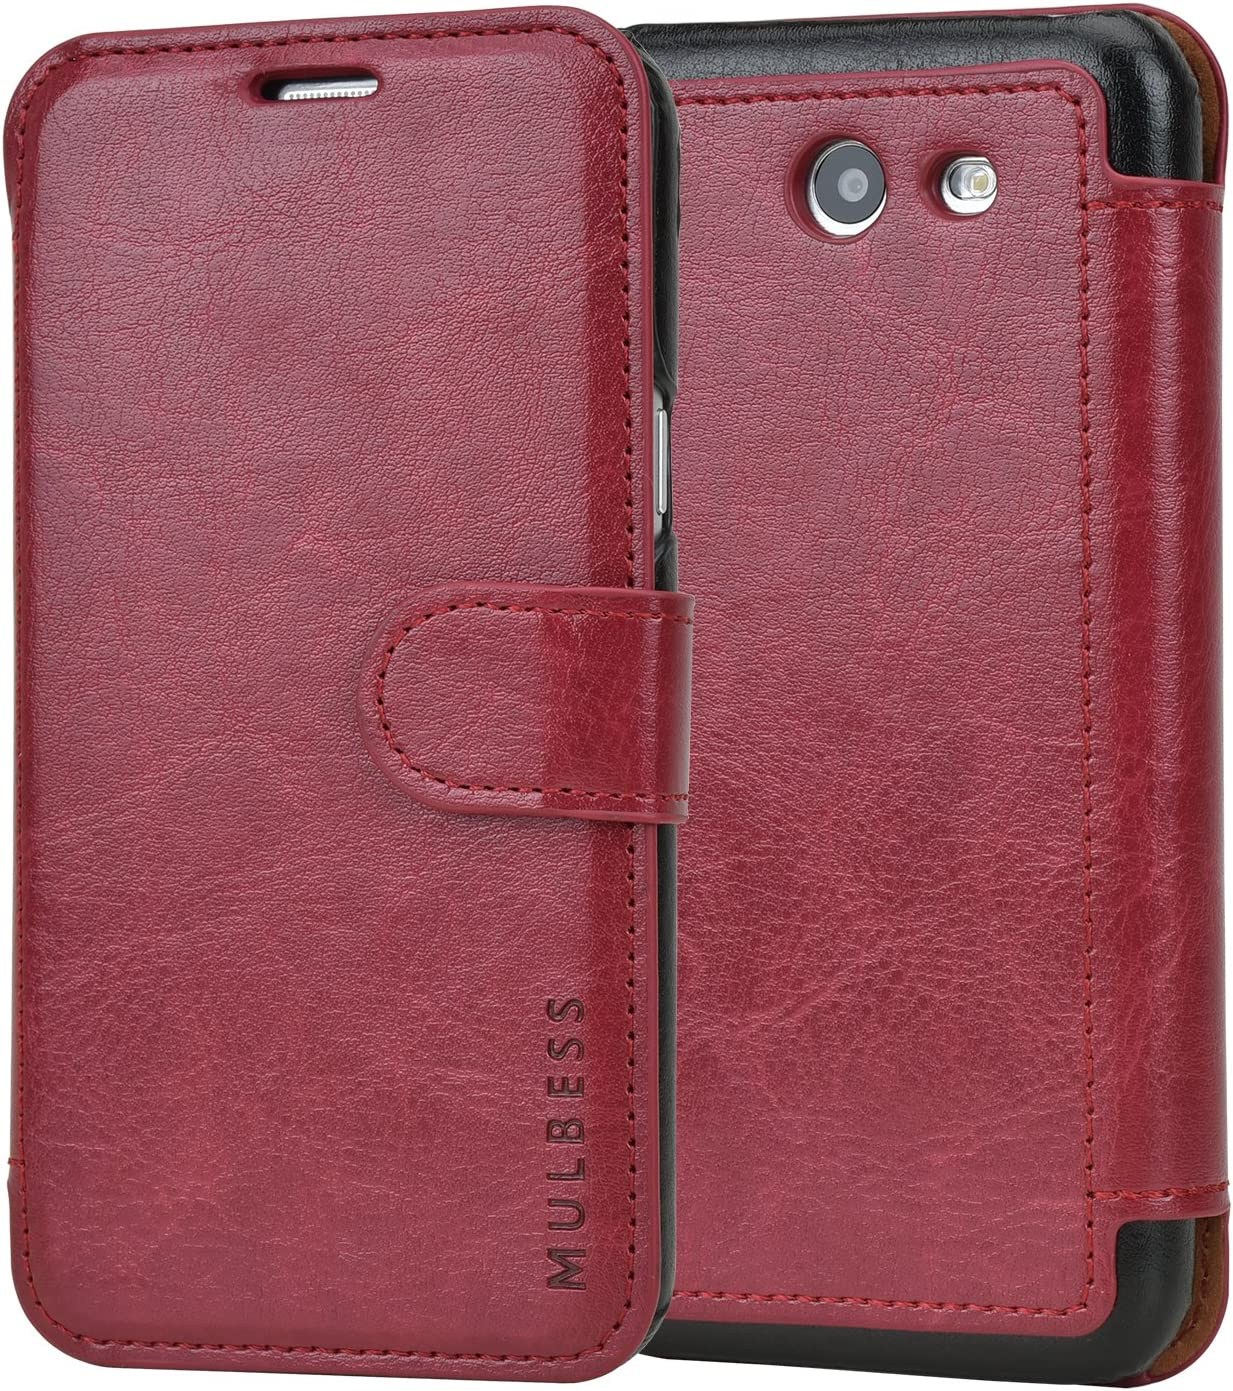 Mulbess Layered Samsung Galaxy J3 2017 Leather Case,Flip Phone Case Wallet with Magnetic Clasp for Samsung Galaxy J3 Emerge / J3 Eclipse / J3 Mission / J3 Prime/Express Prime 2 Cover, Wine Red